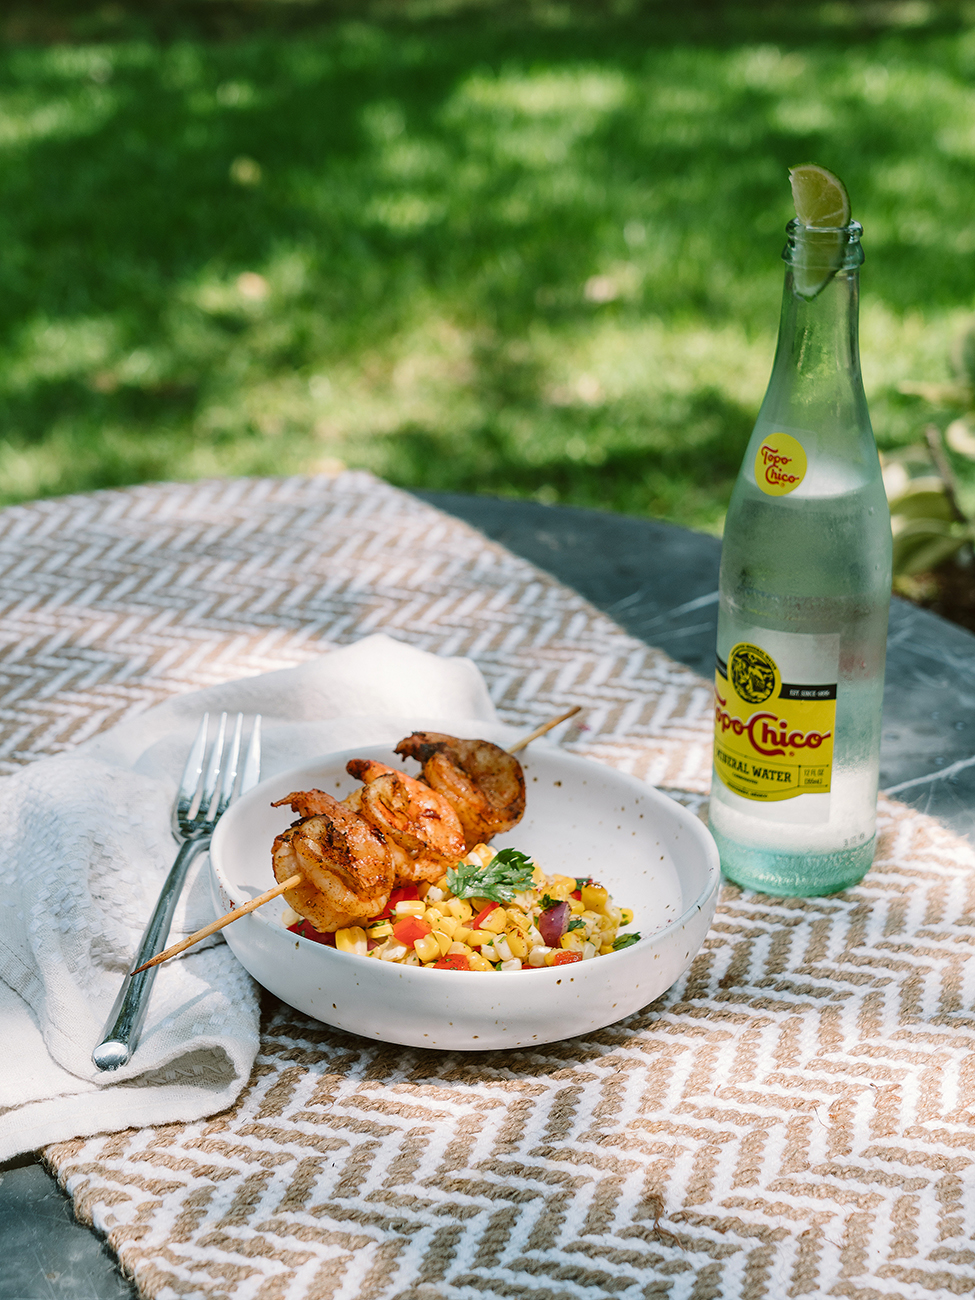 Grilled Shrimp and corn salad served on a table with a bottle of water